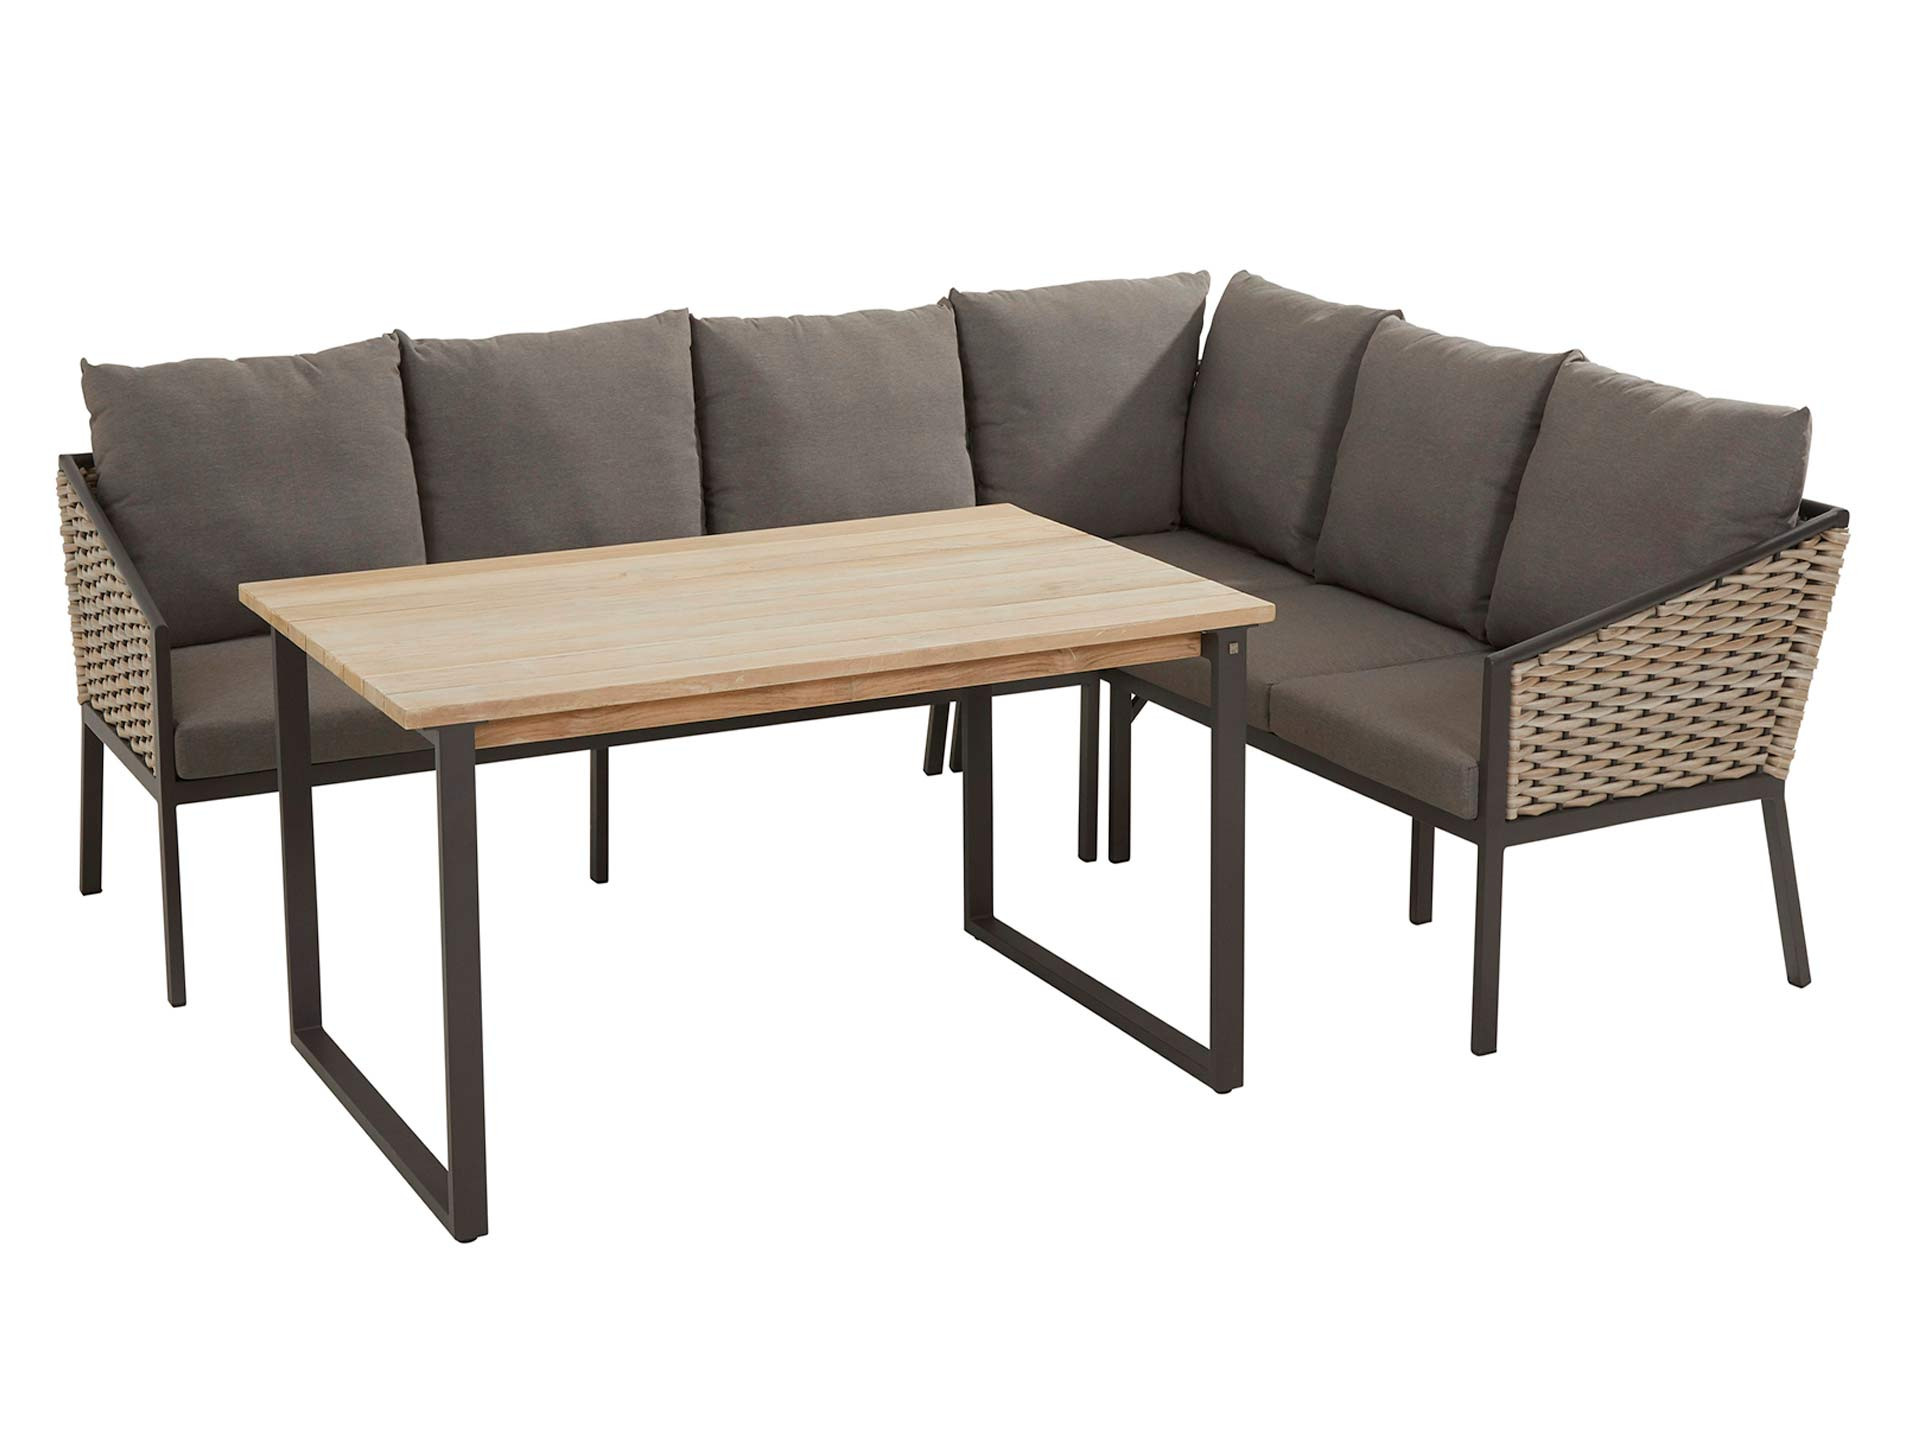 Bo dining set 3-delig